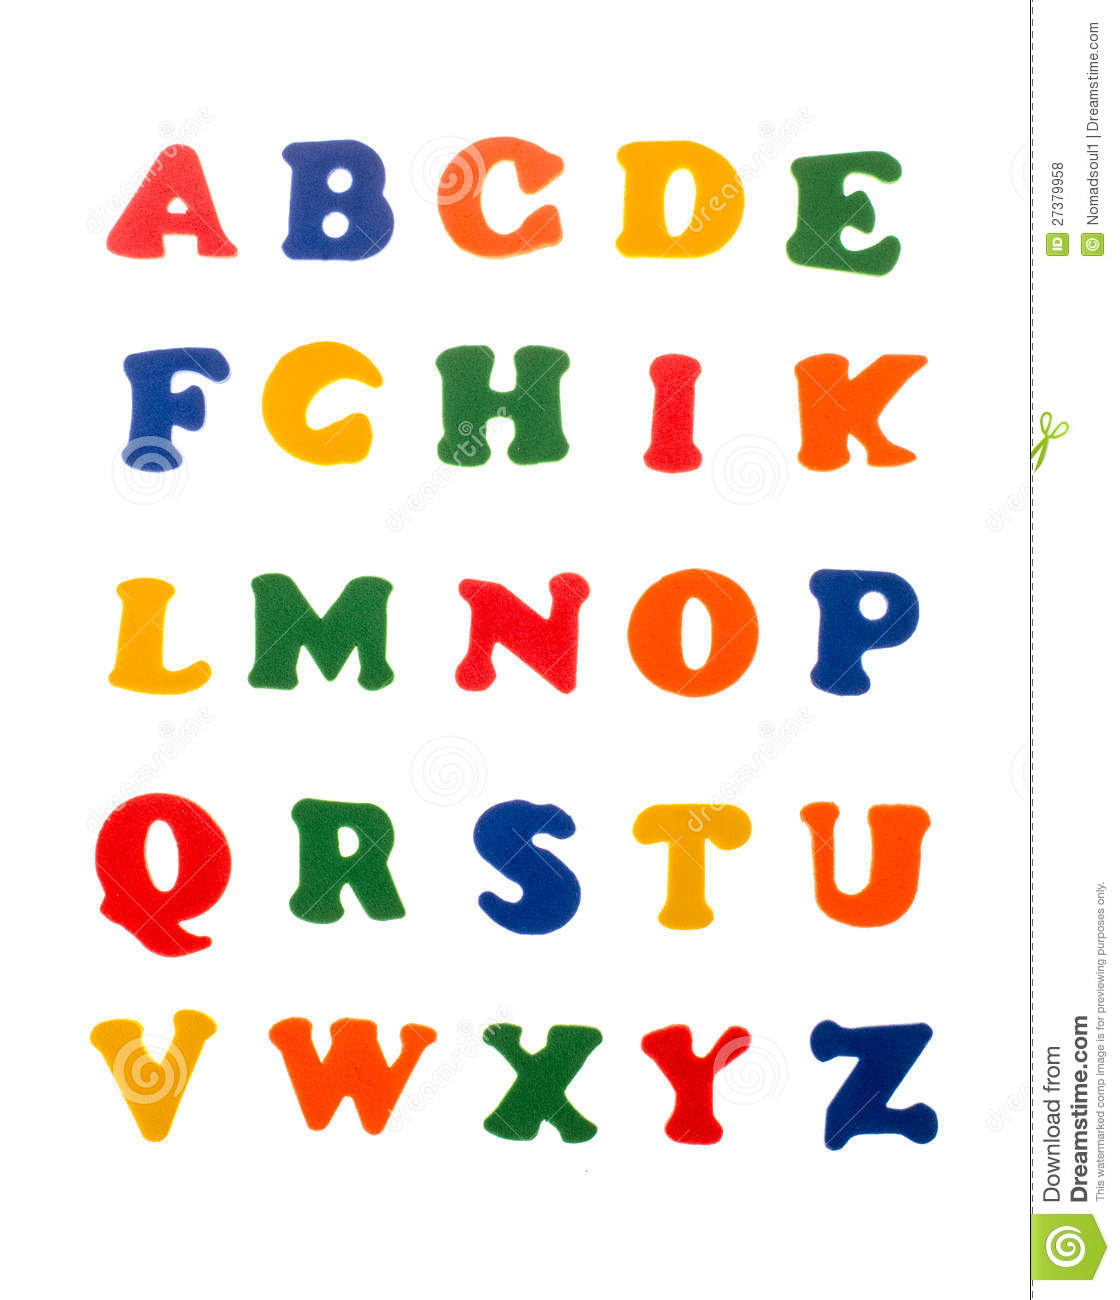 Colorful Letters Of Alphabet Royalty Free Stock Photos ... - photo#36